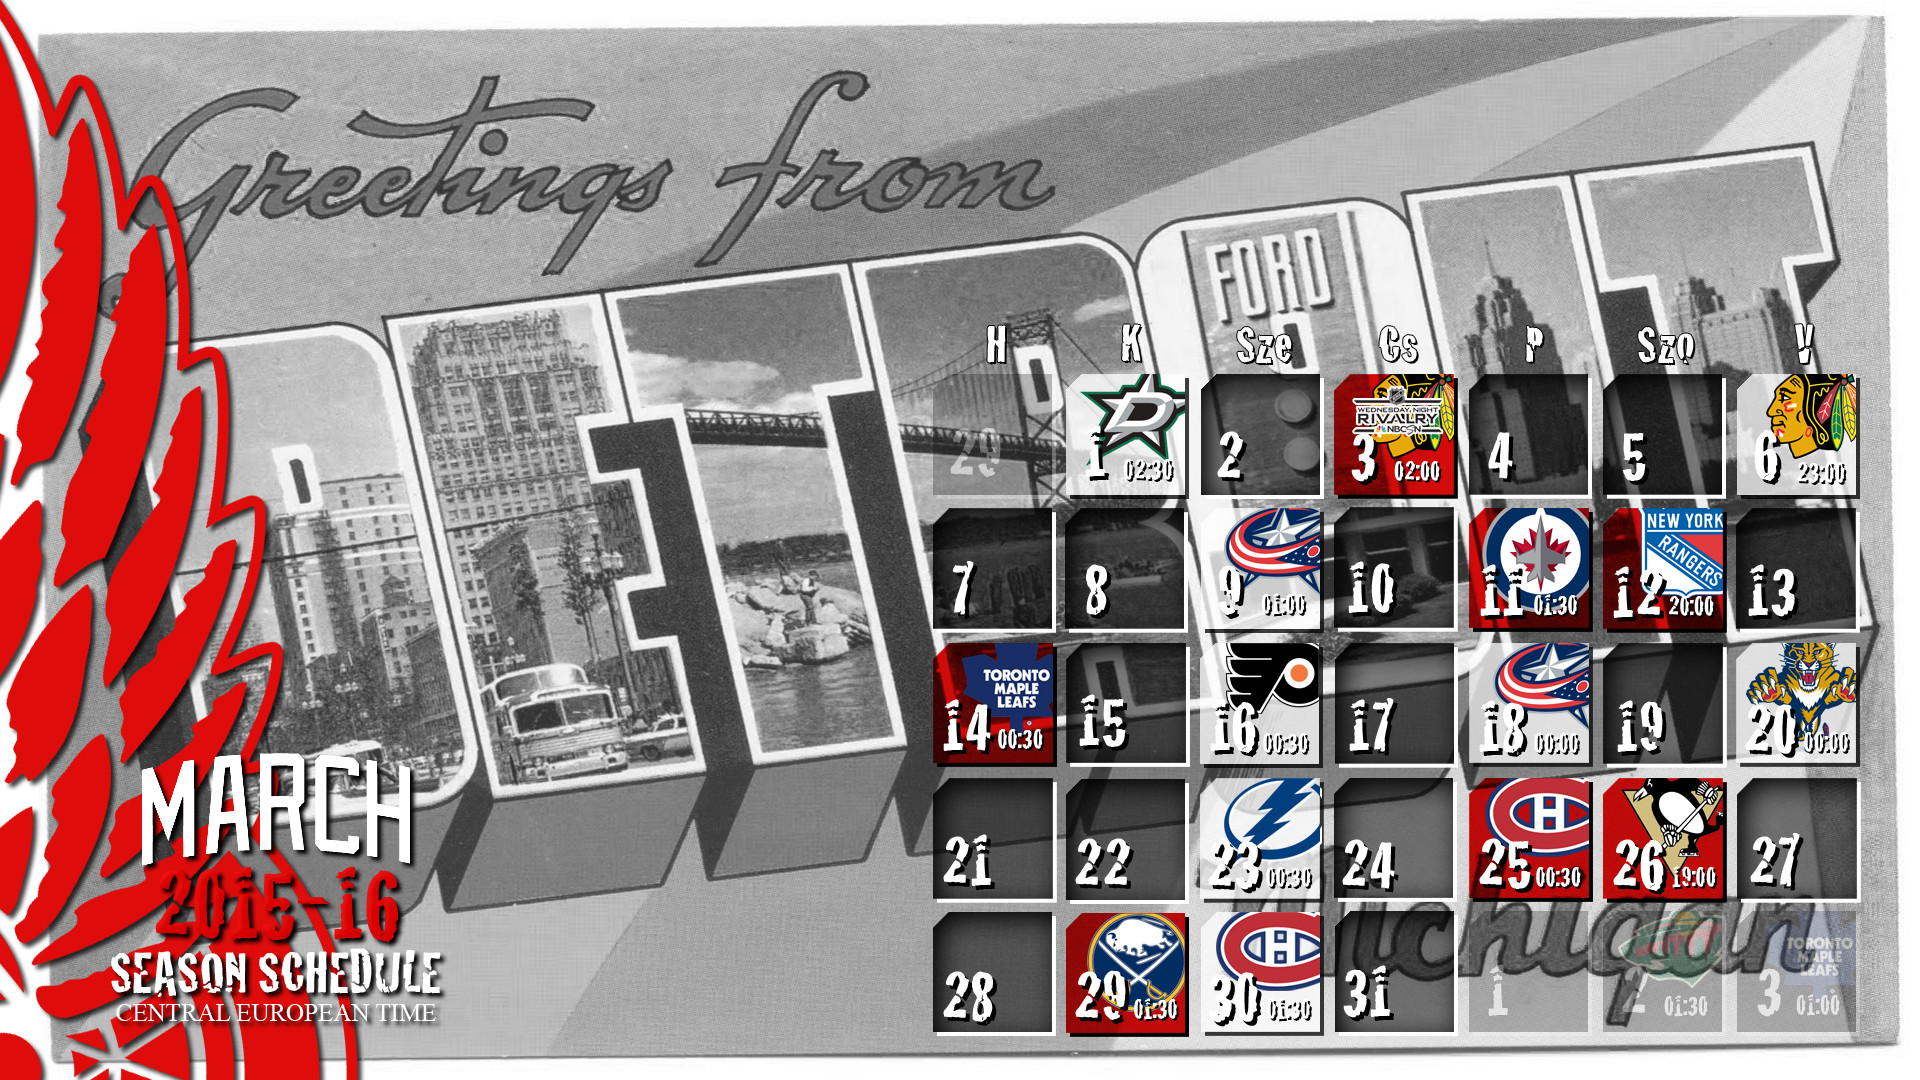 1920x1080 Fan art wallpaper of the 2015-16 regular season schedule of the Detroit Red  Wings